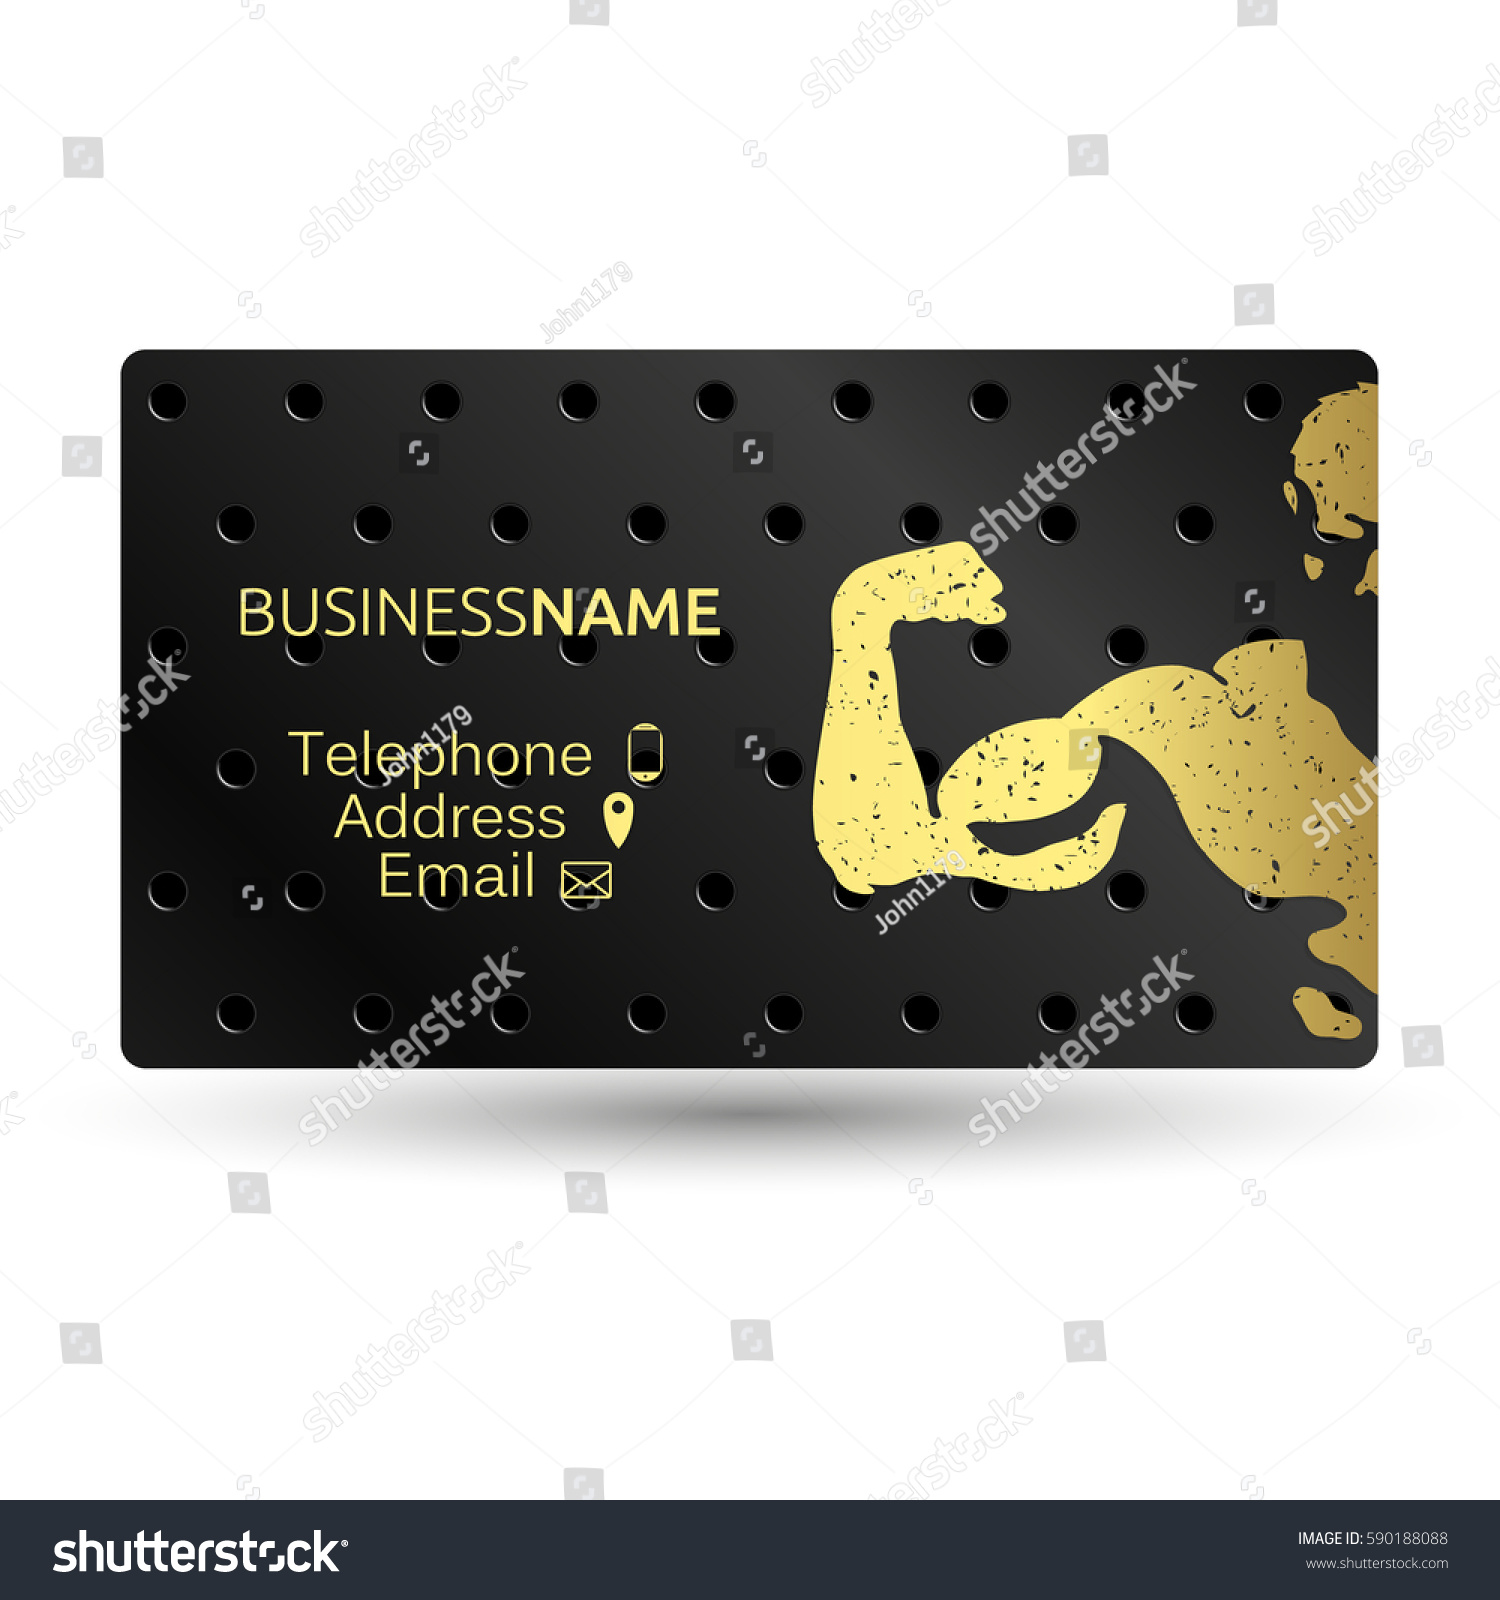 Business Card Sports Gym Stock Vector 590188088 - Shutterstock